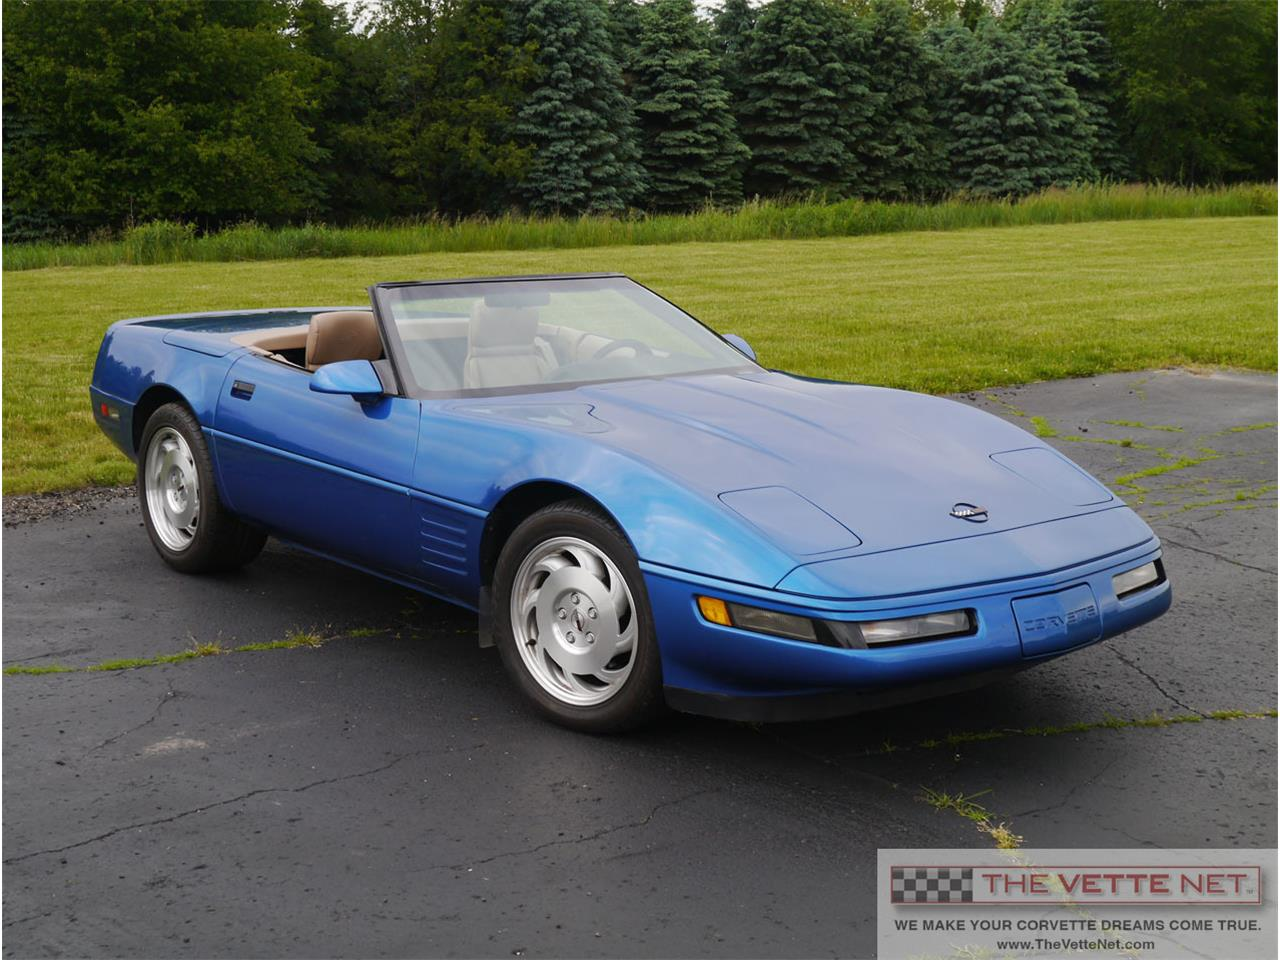 Large Picture of '93 Chevrolet Corvette - $14,990.00 Offered by The Vette Net - L7AW